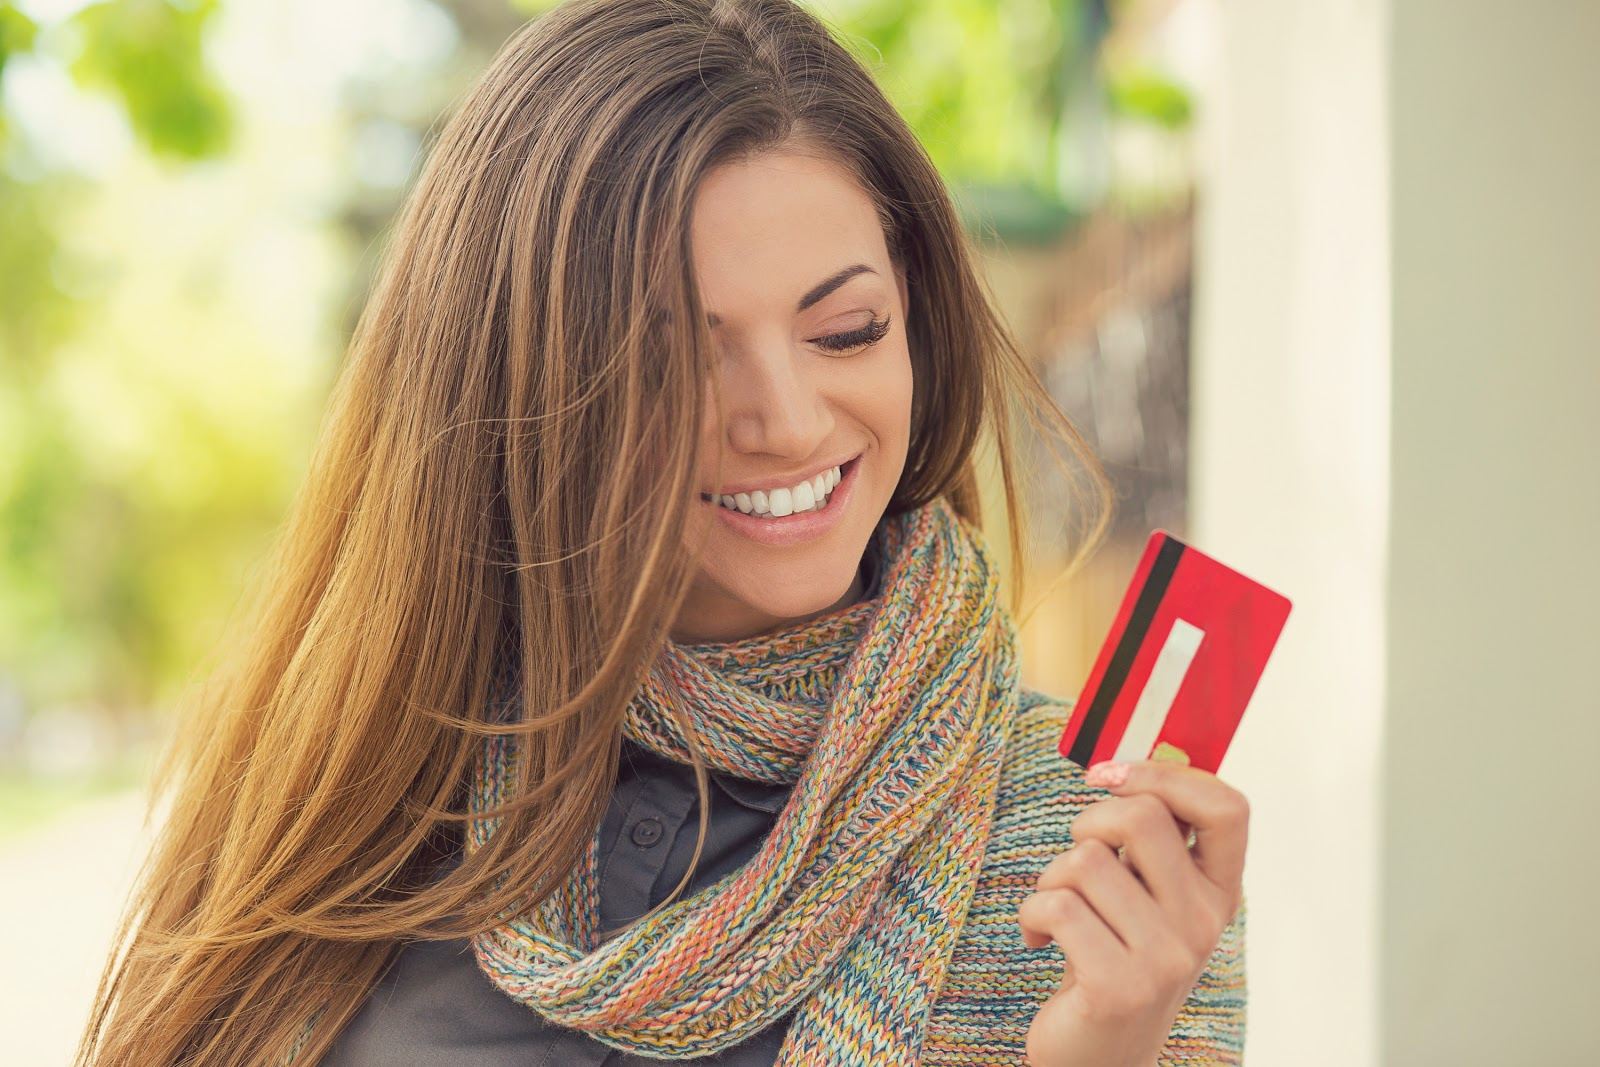 A smiling woman holds a credit card